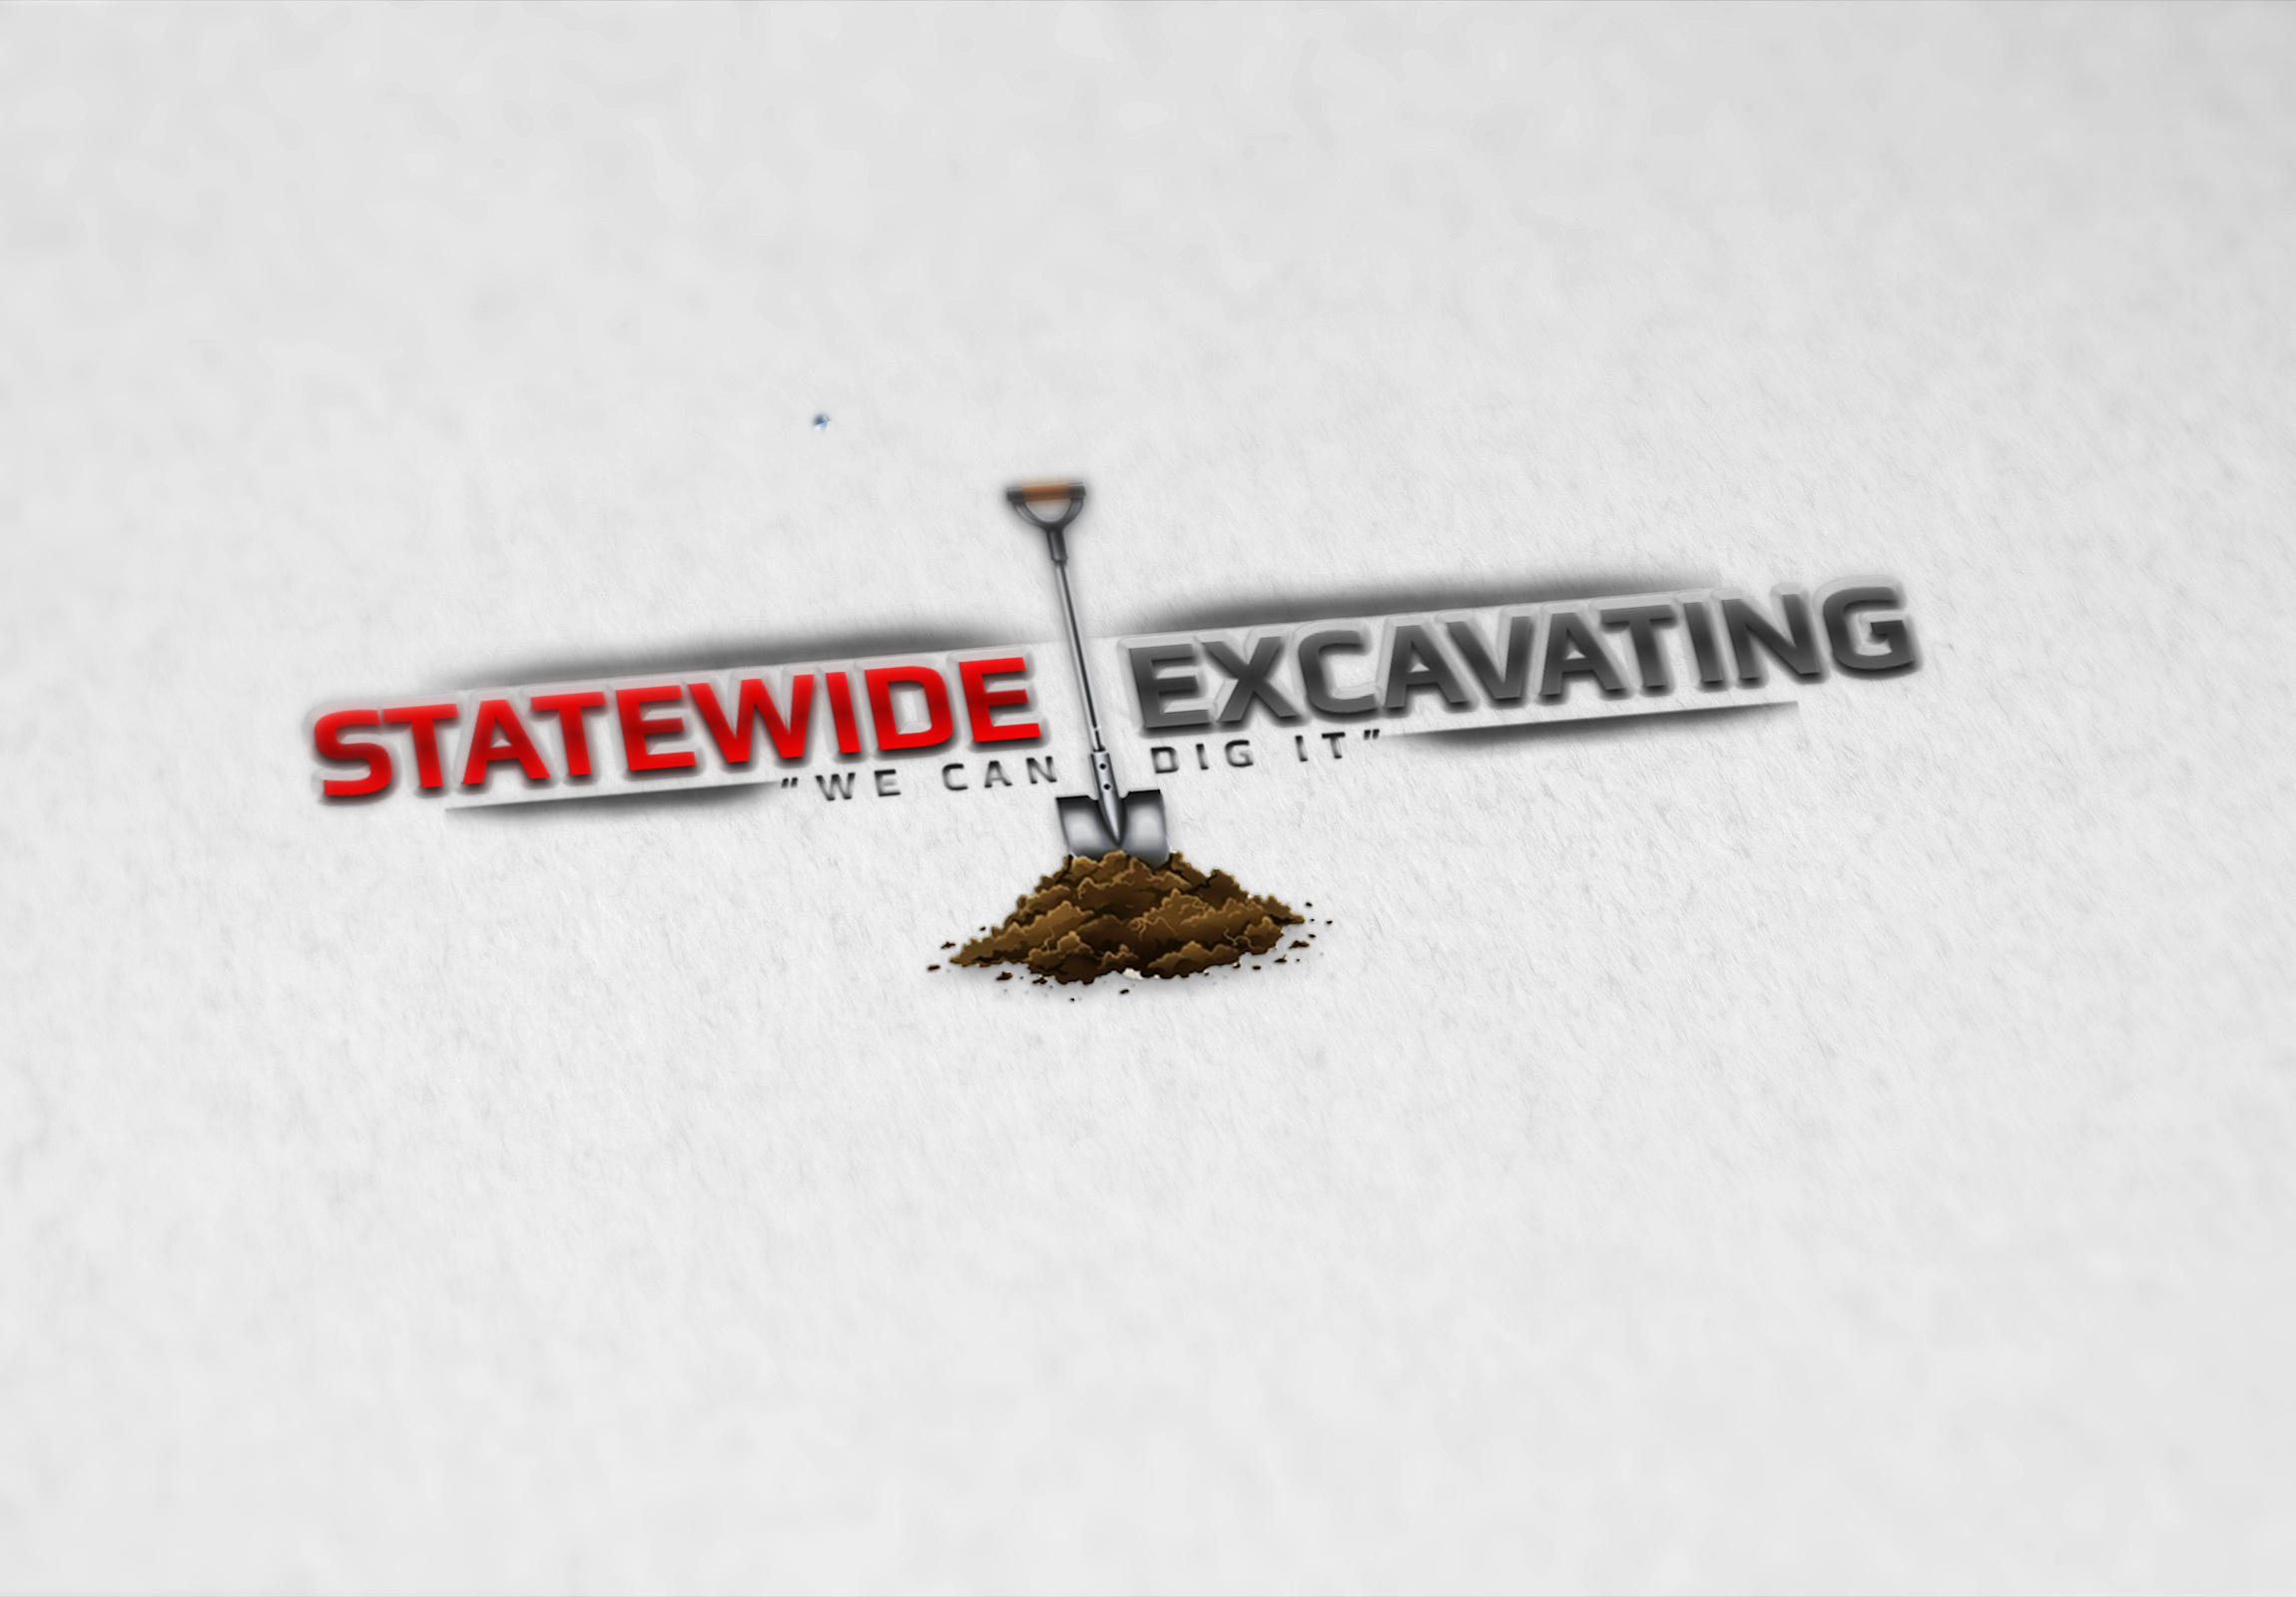 Statewide Excavating